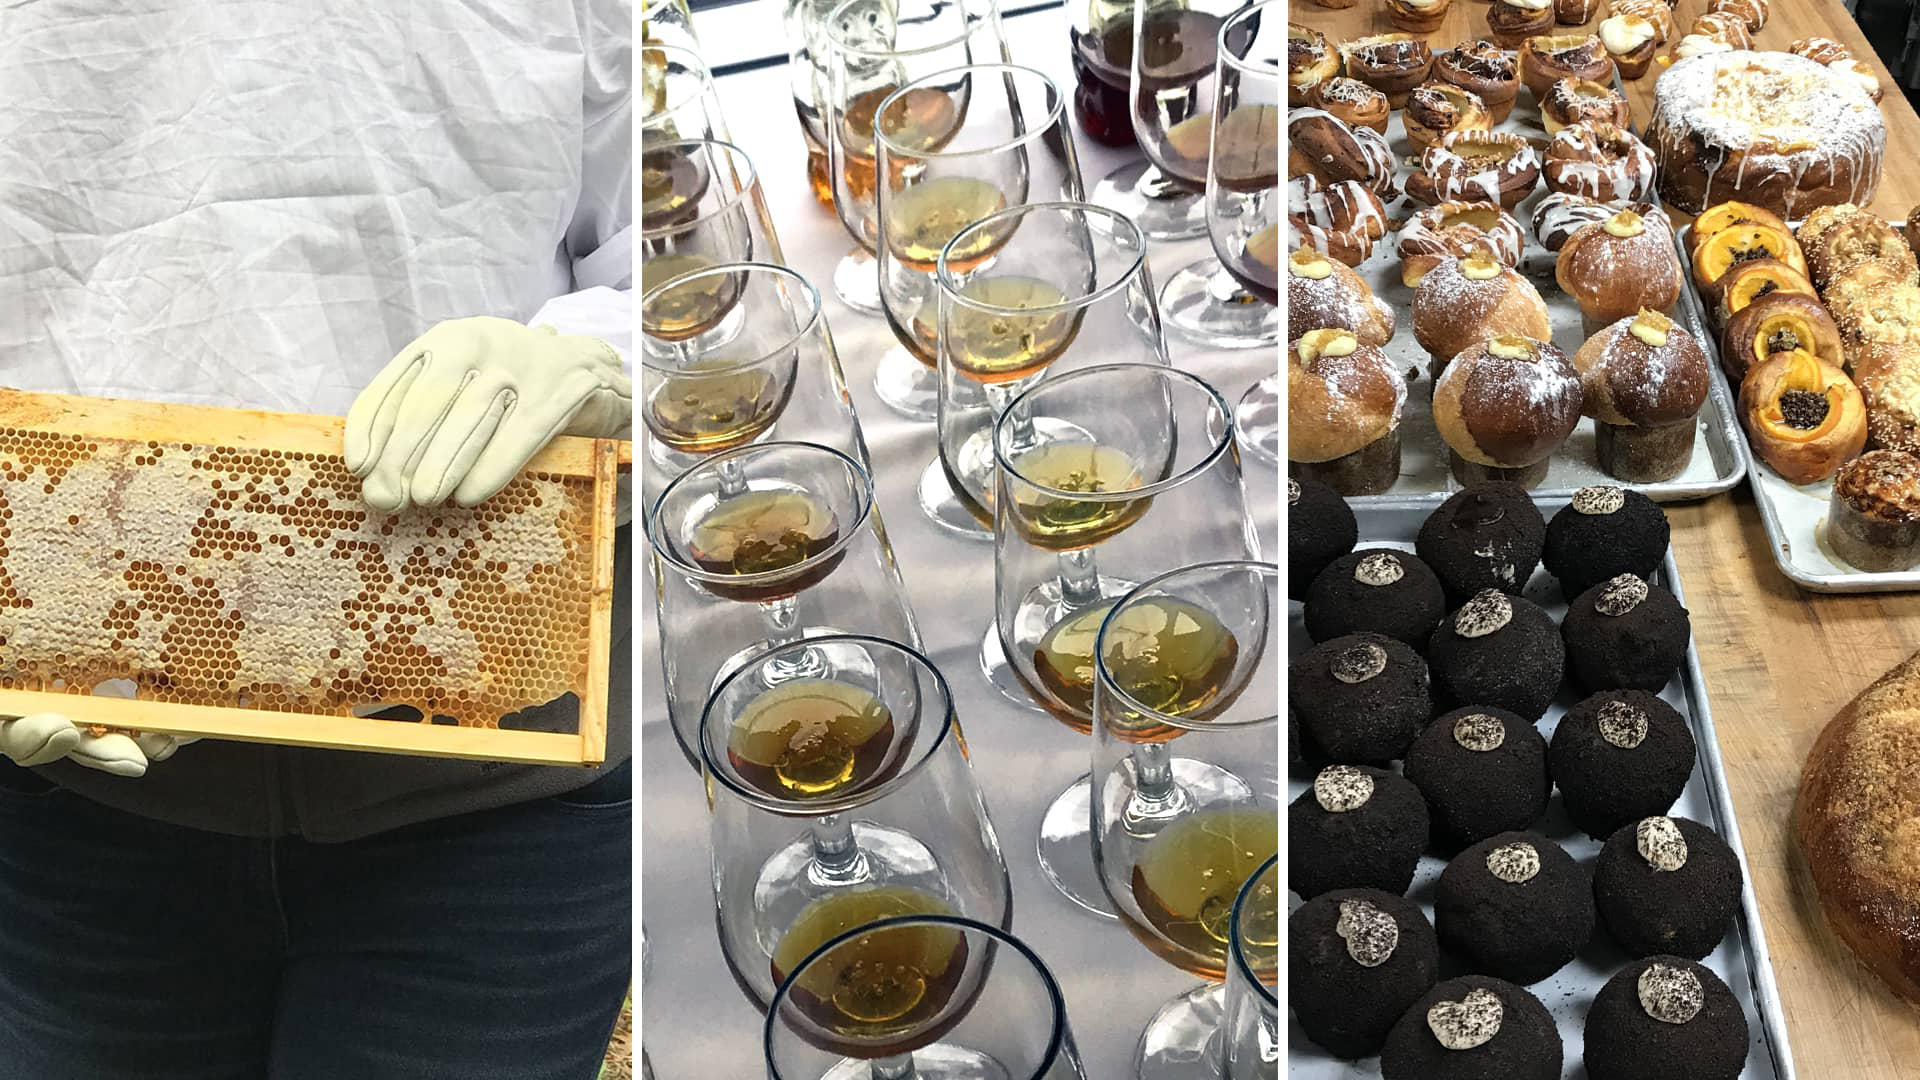 Baked goods, a honey tasting and an apiary tour at the 2018 Honey Baking Summit.